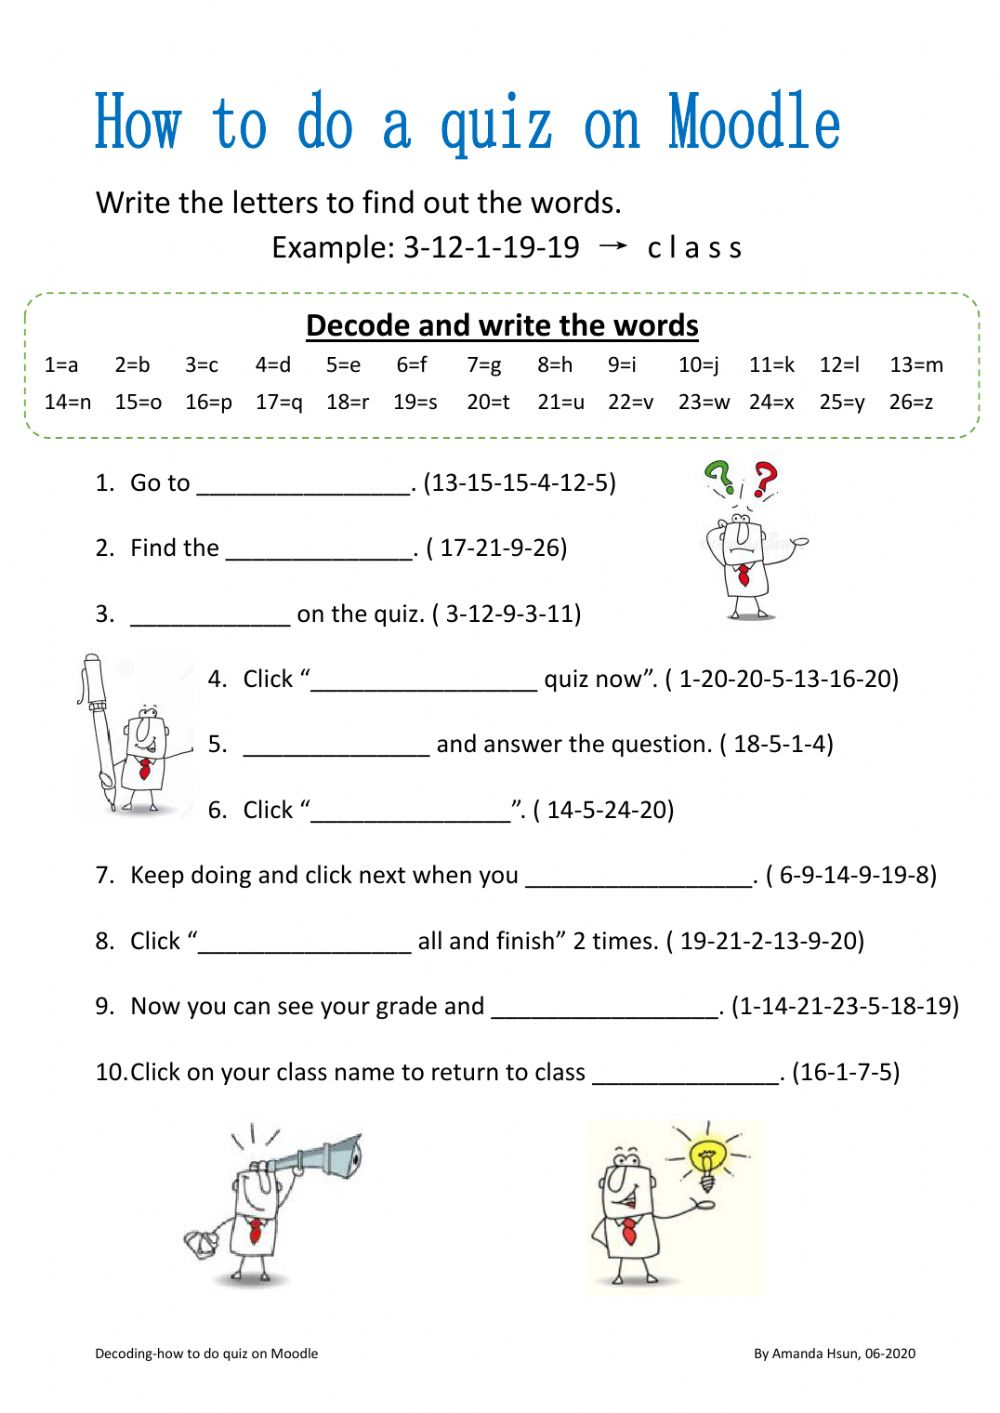 hight resolution of Decoding-how to do a quiz on moodle worksheet